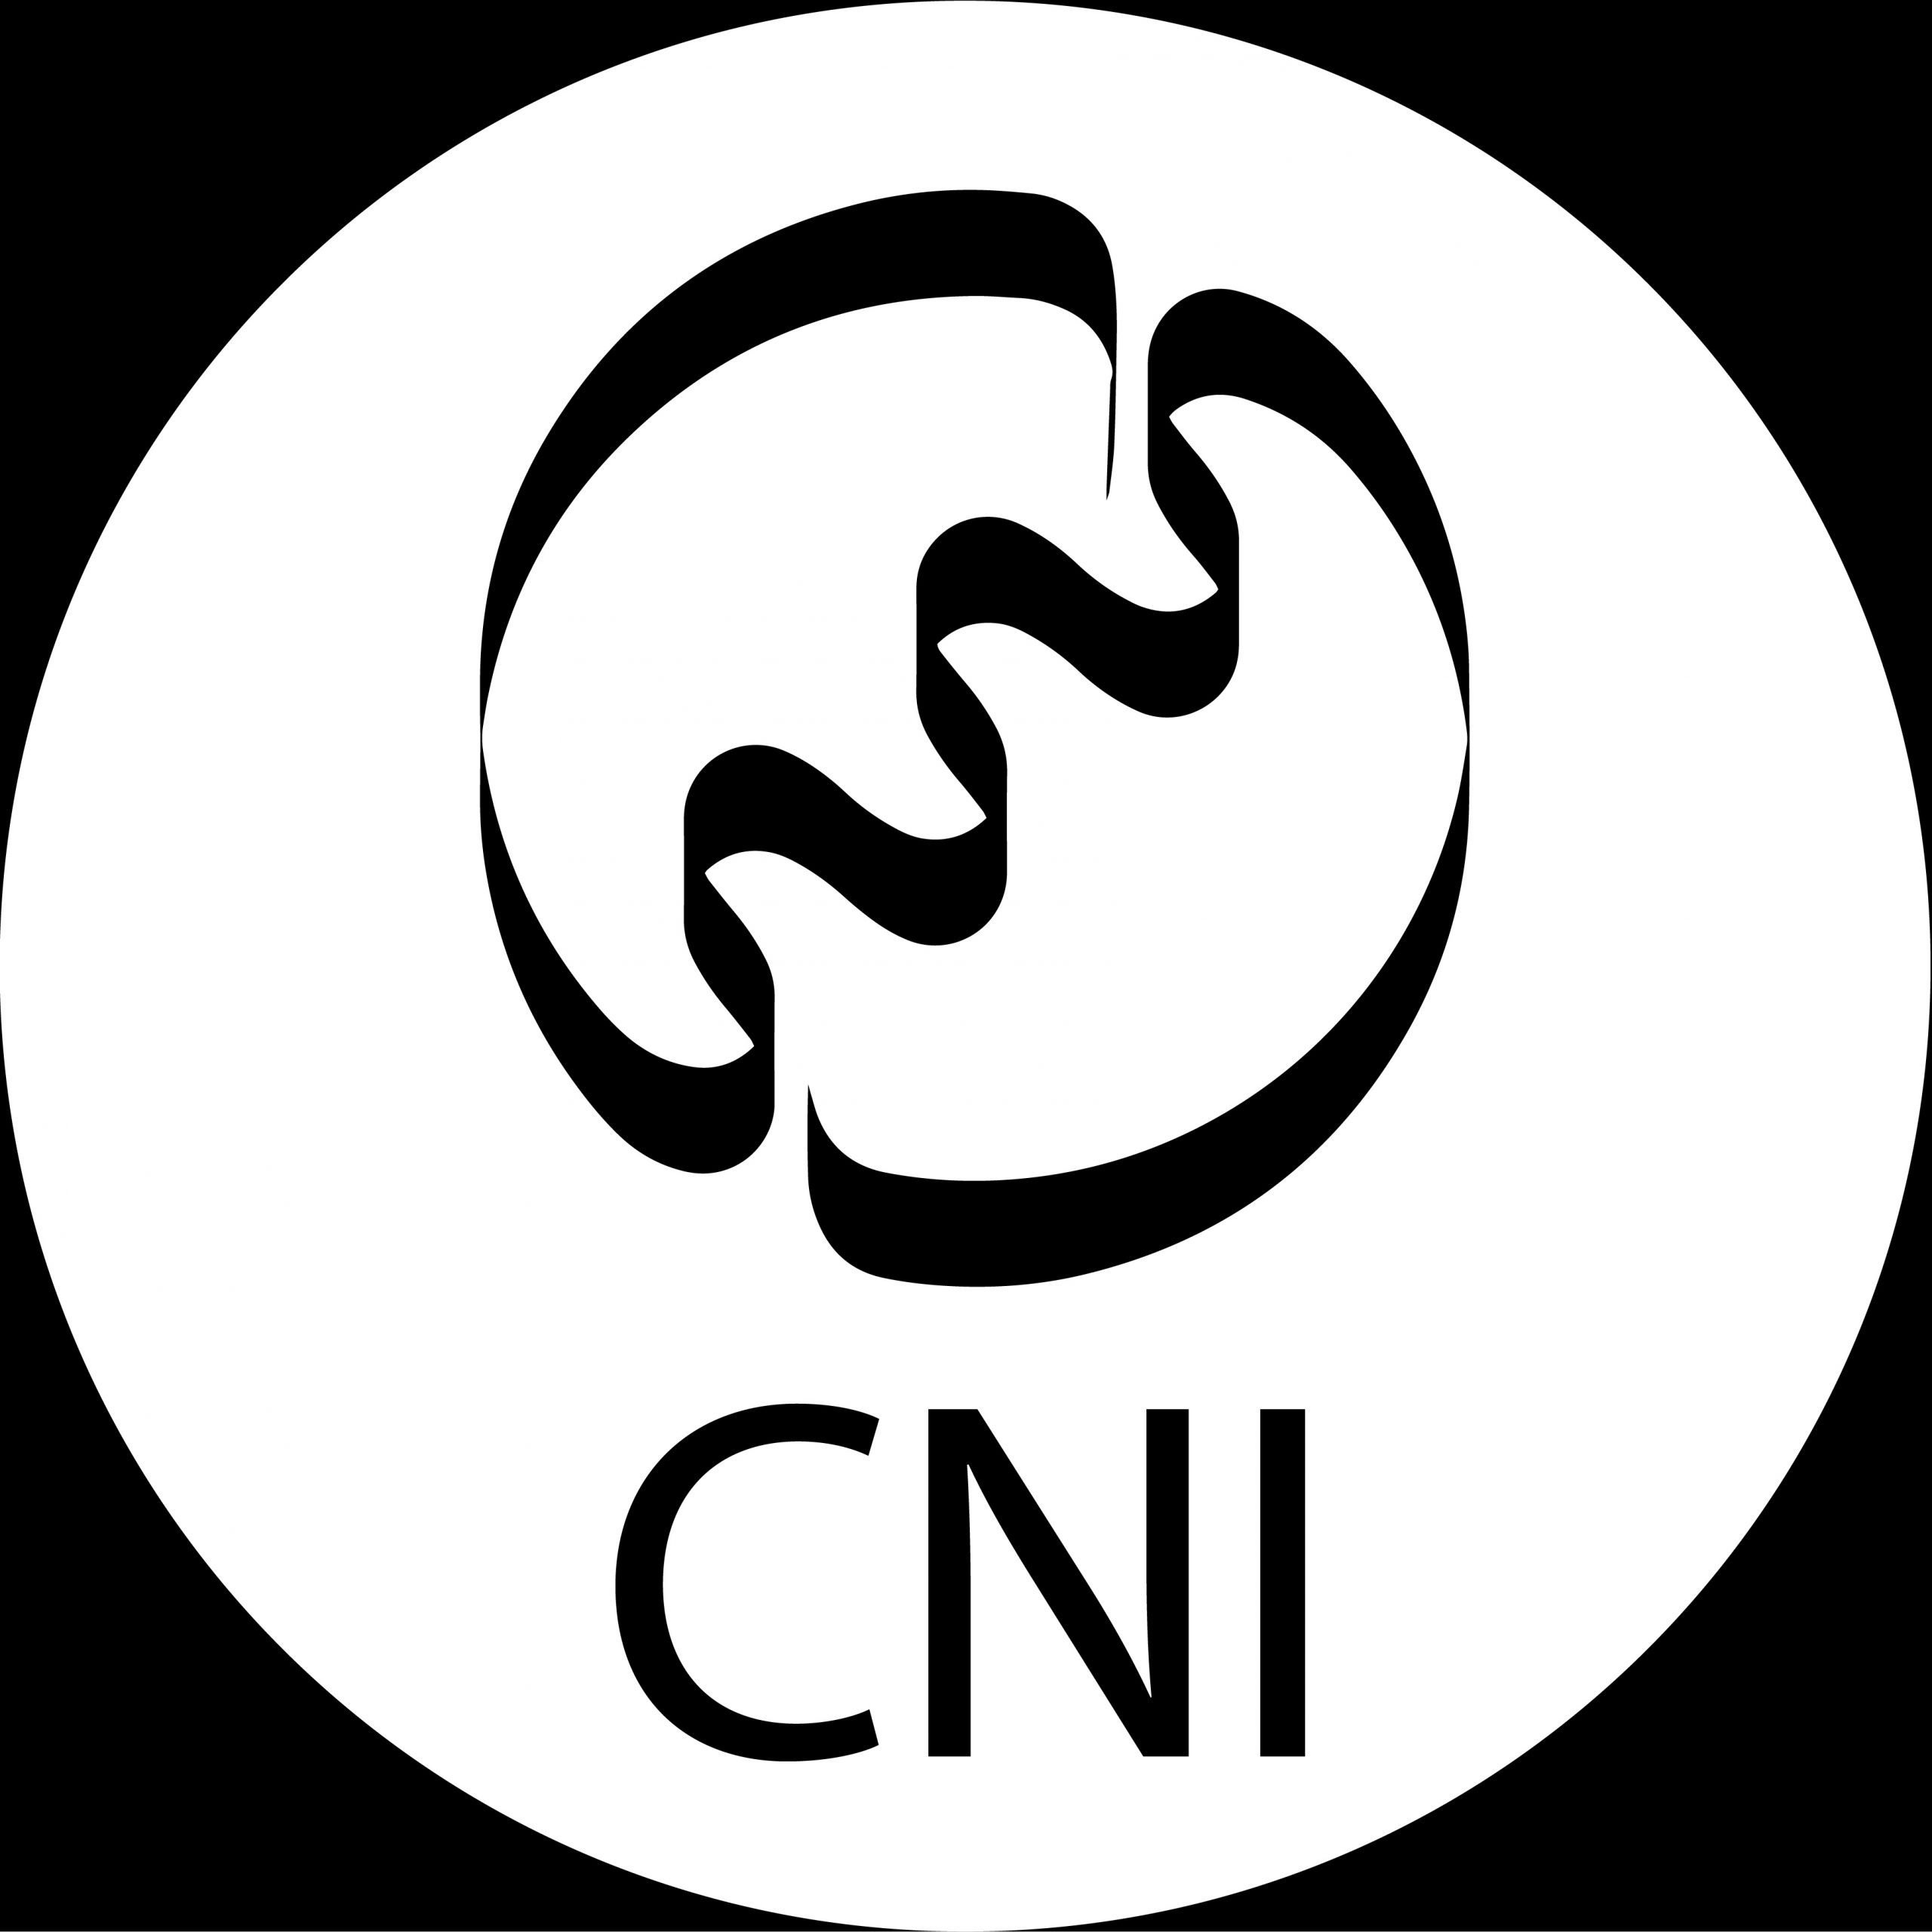 Centre for Networked Intelligence